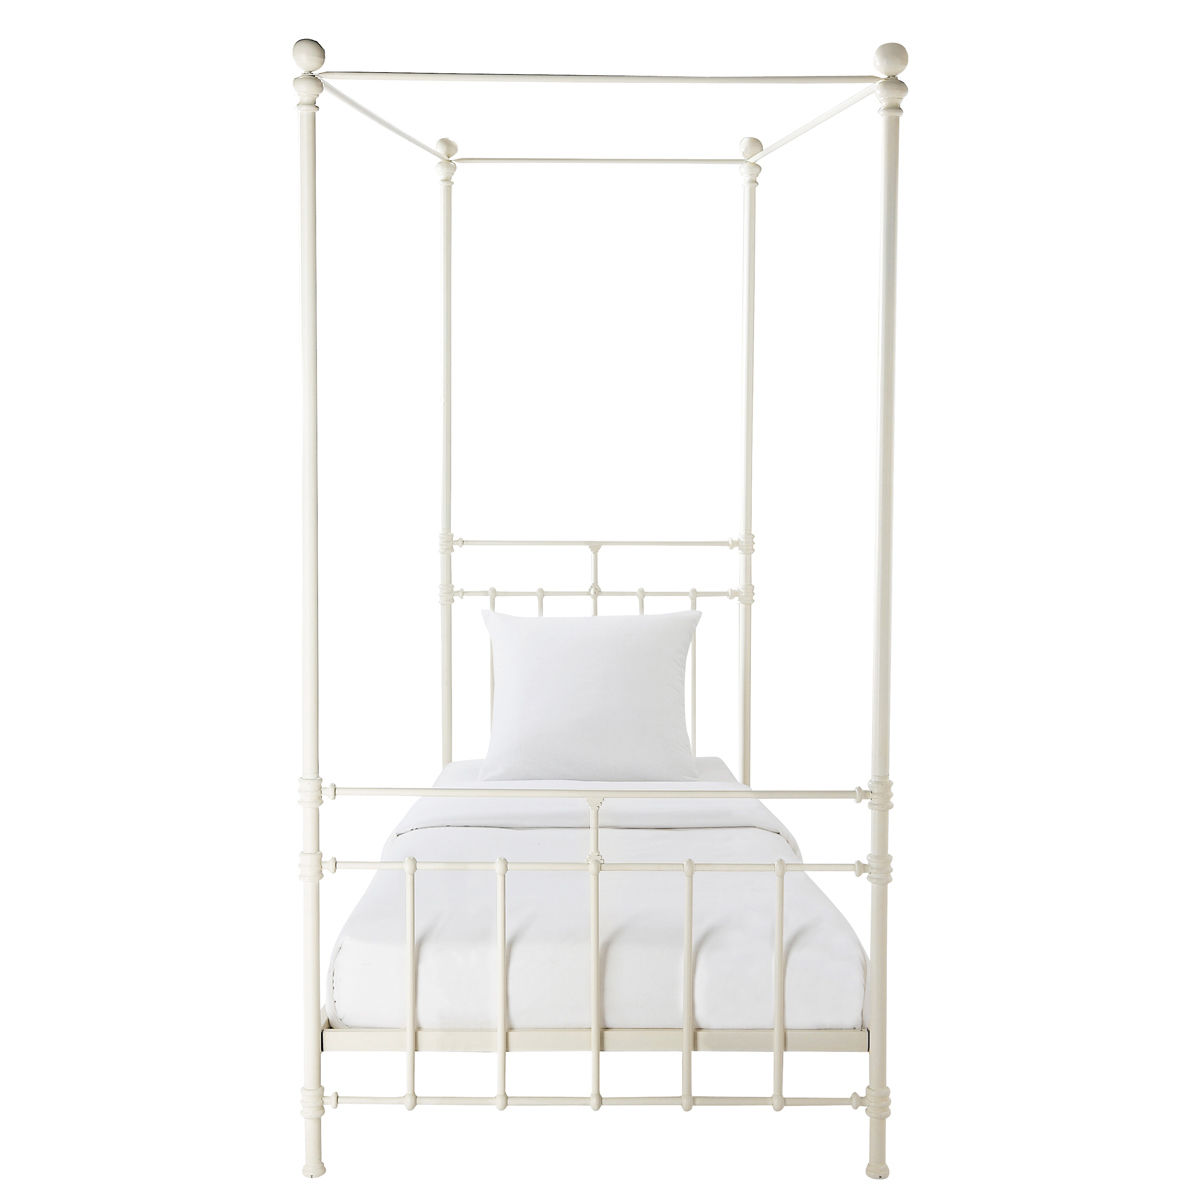 Metal 90 X 190cm Four Poster Bed In White Syracuse Maisons Du Monde